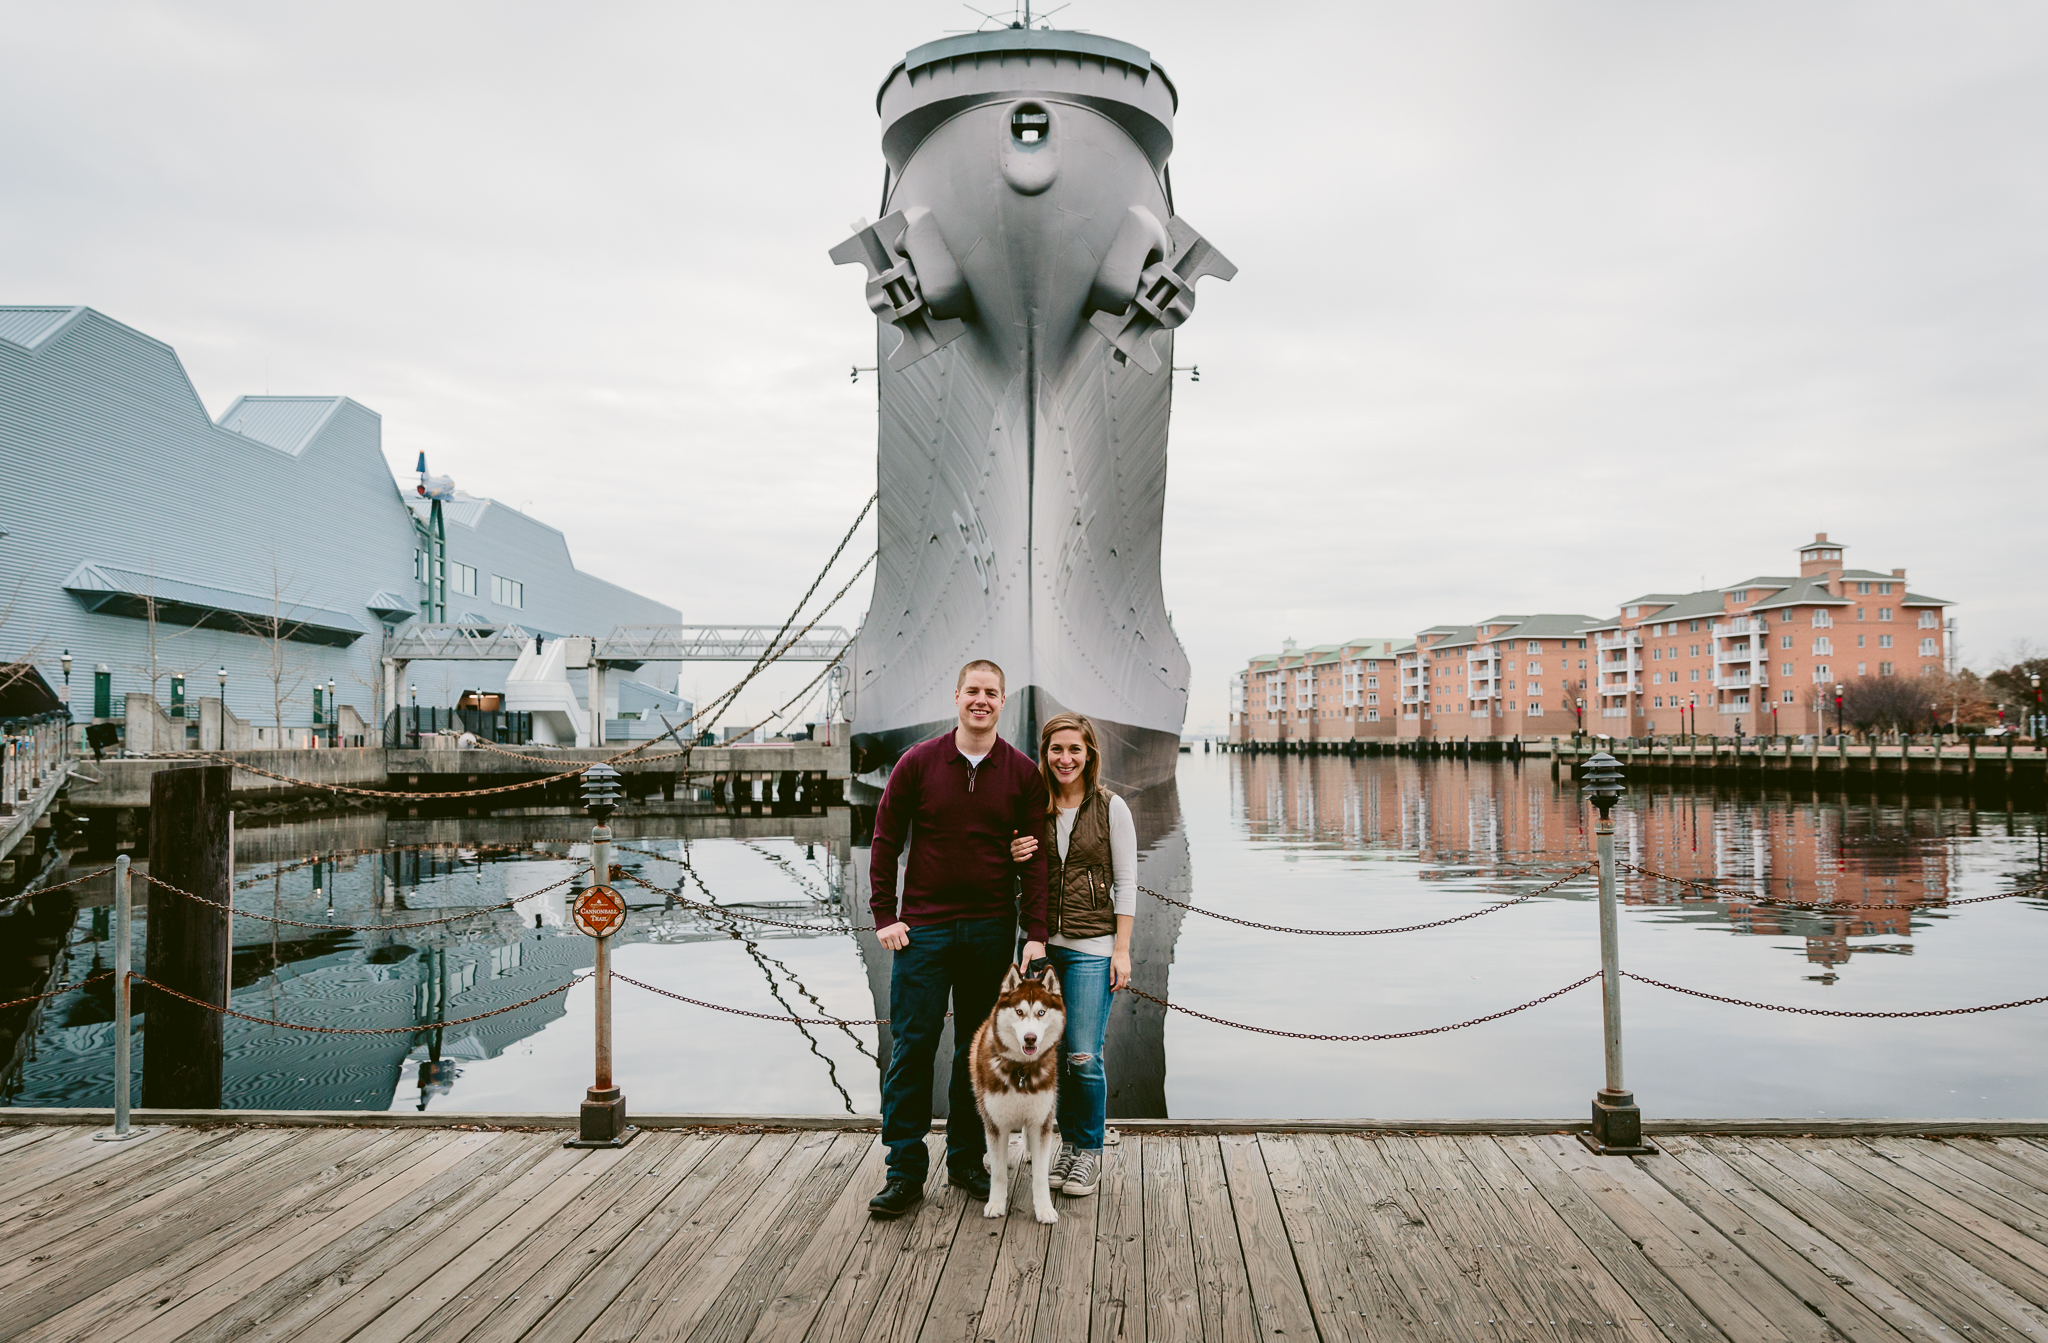 Norfolk/portrait/USSWisconsin